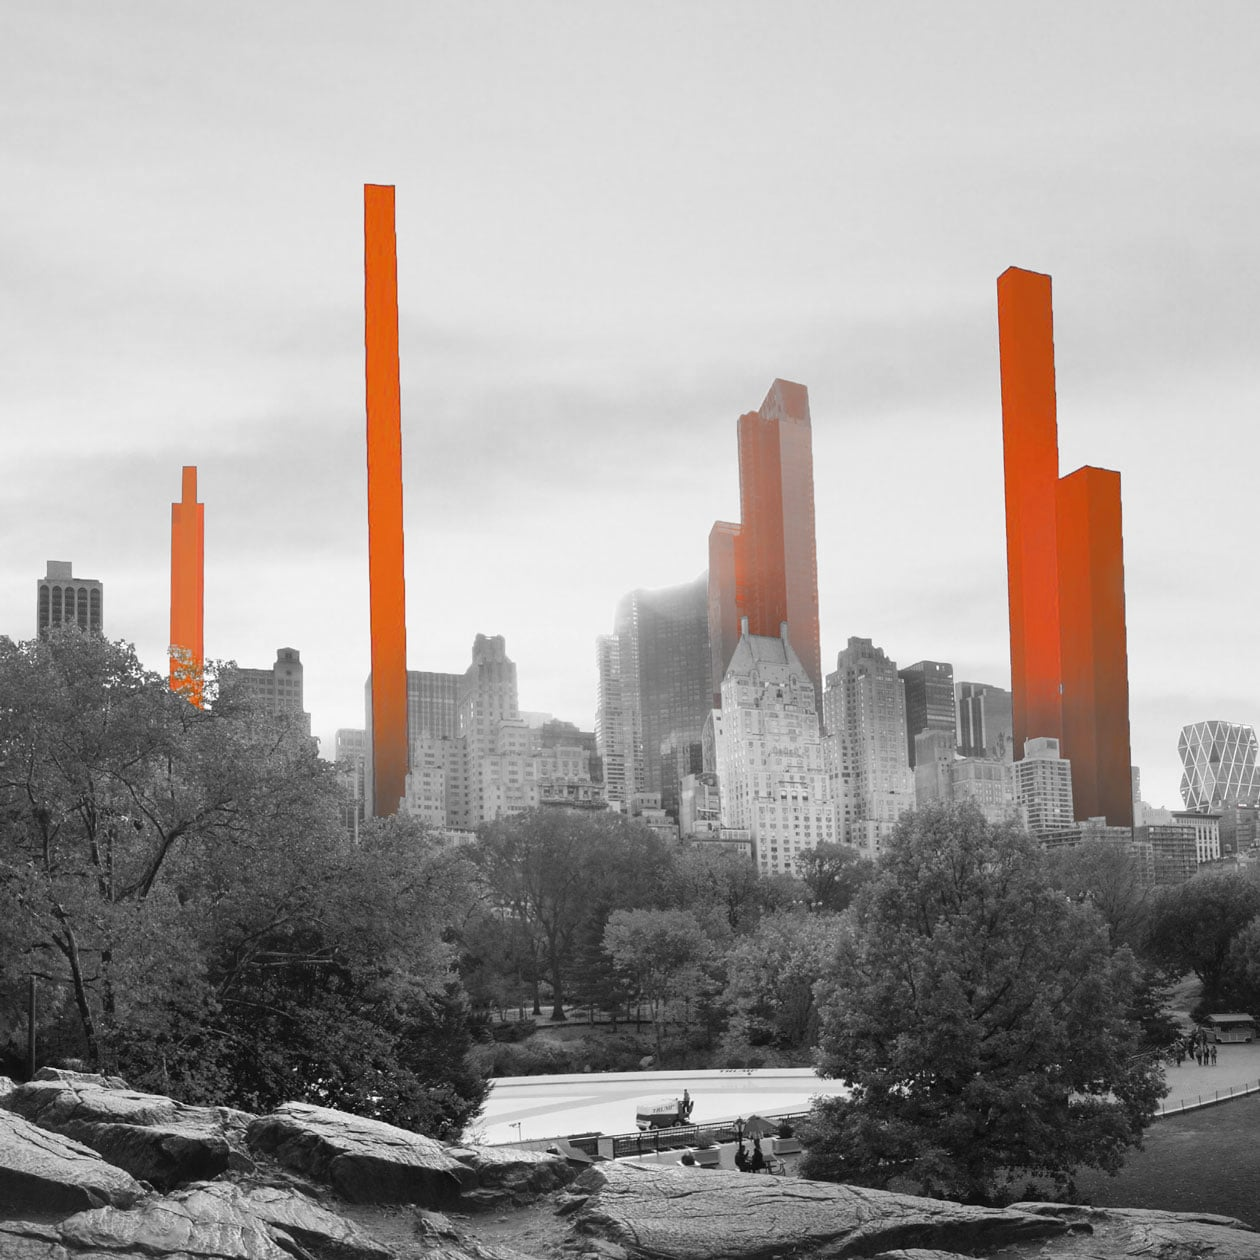 Illustration of Manhattan skyline with super-tall buildings